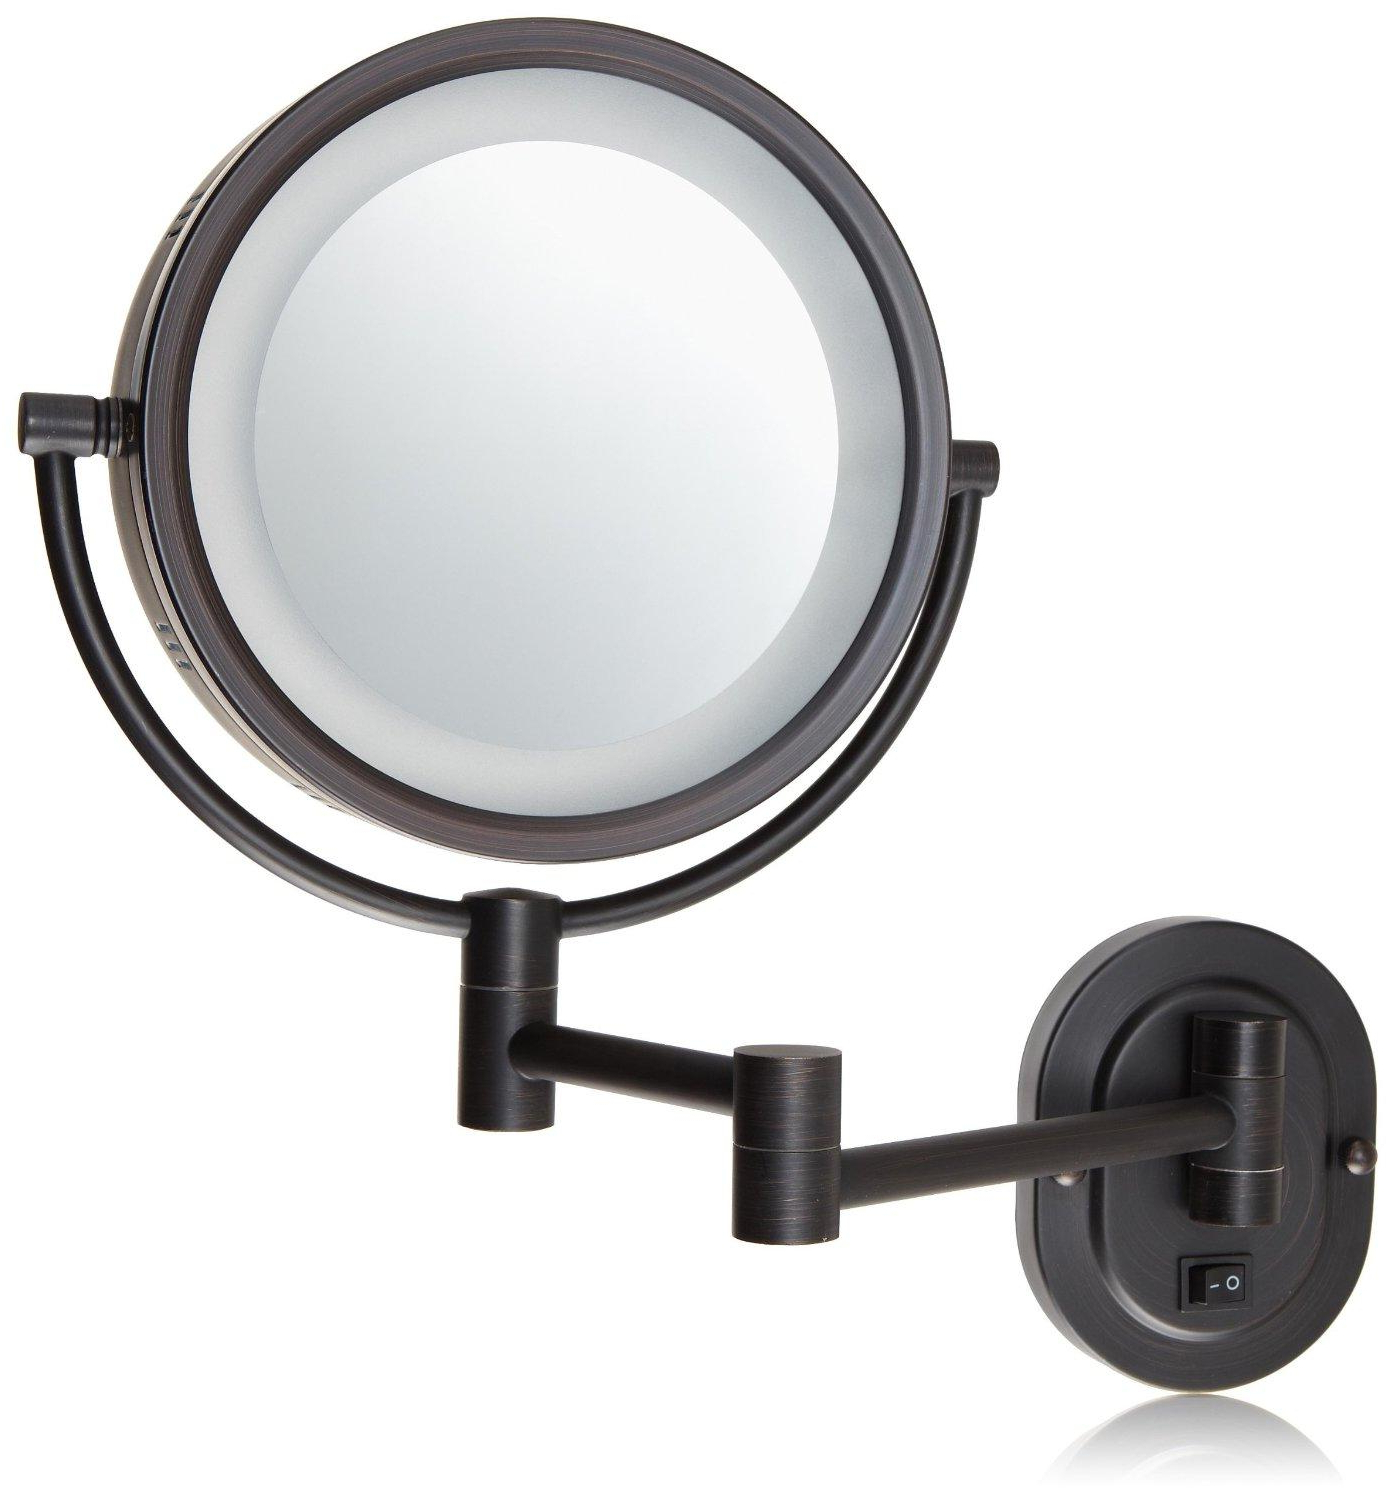 Favorite Magnifying Wall Mirrors Regarding Jerdon Hl65bzd 8 Inch Lighted Direct Wire Wall Mount Makeup Mirror With 5x Magnification, Bronze Finish (View 4 of 20)